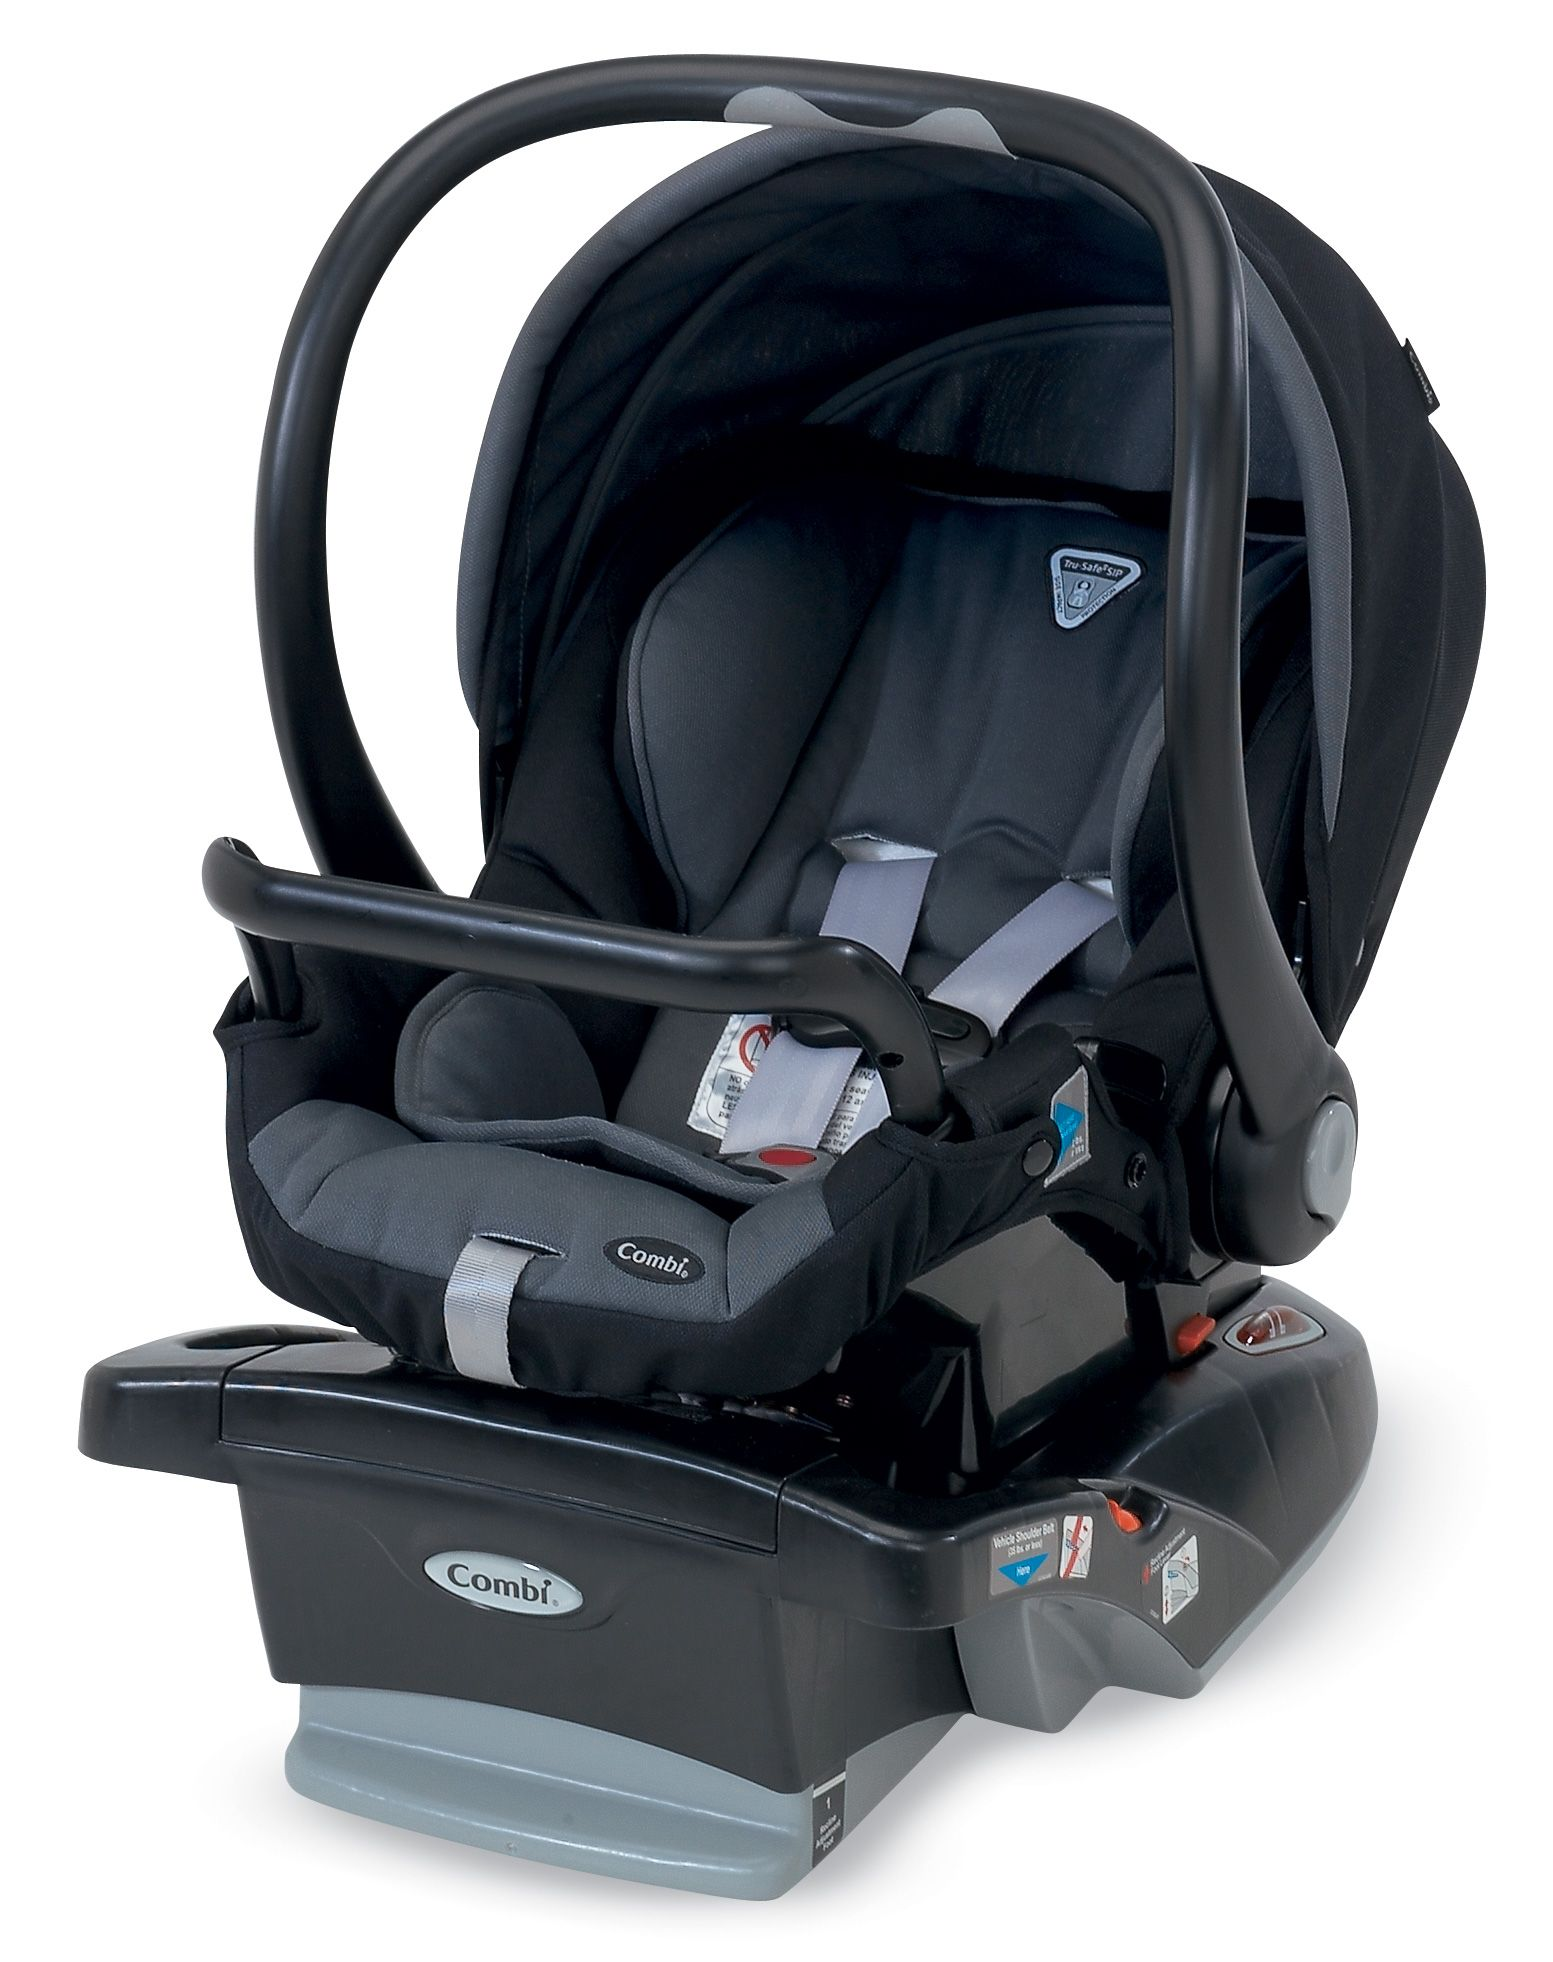 The Combi Shuttle In Graphite Baby Car Seats Booster Seat Car Seats